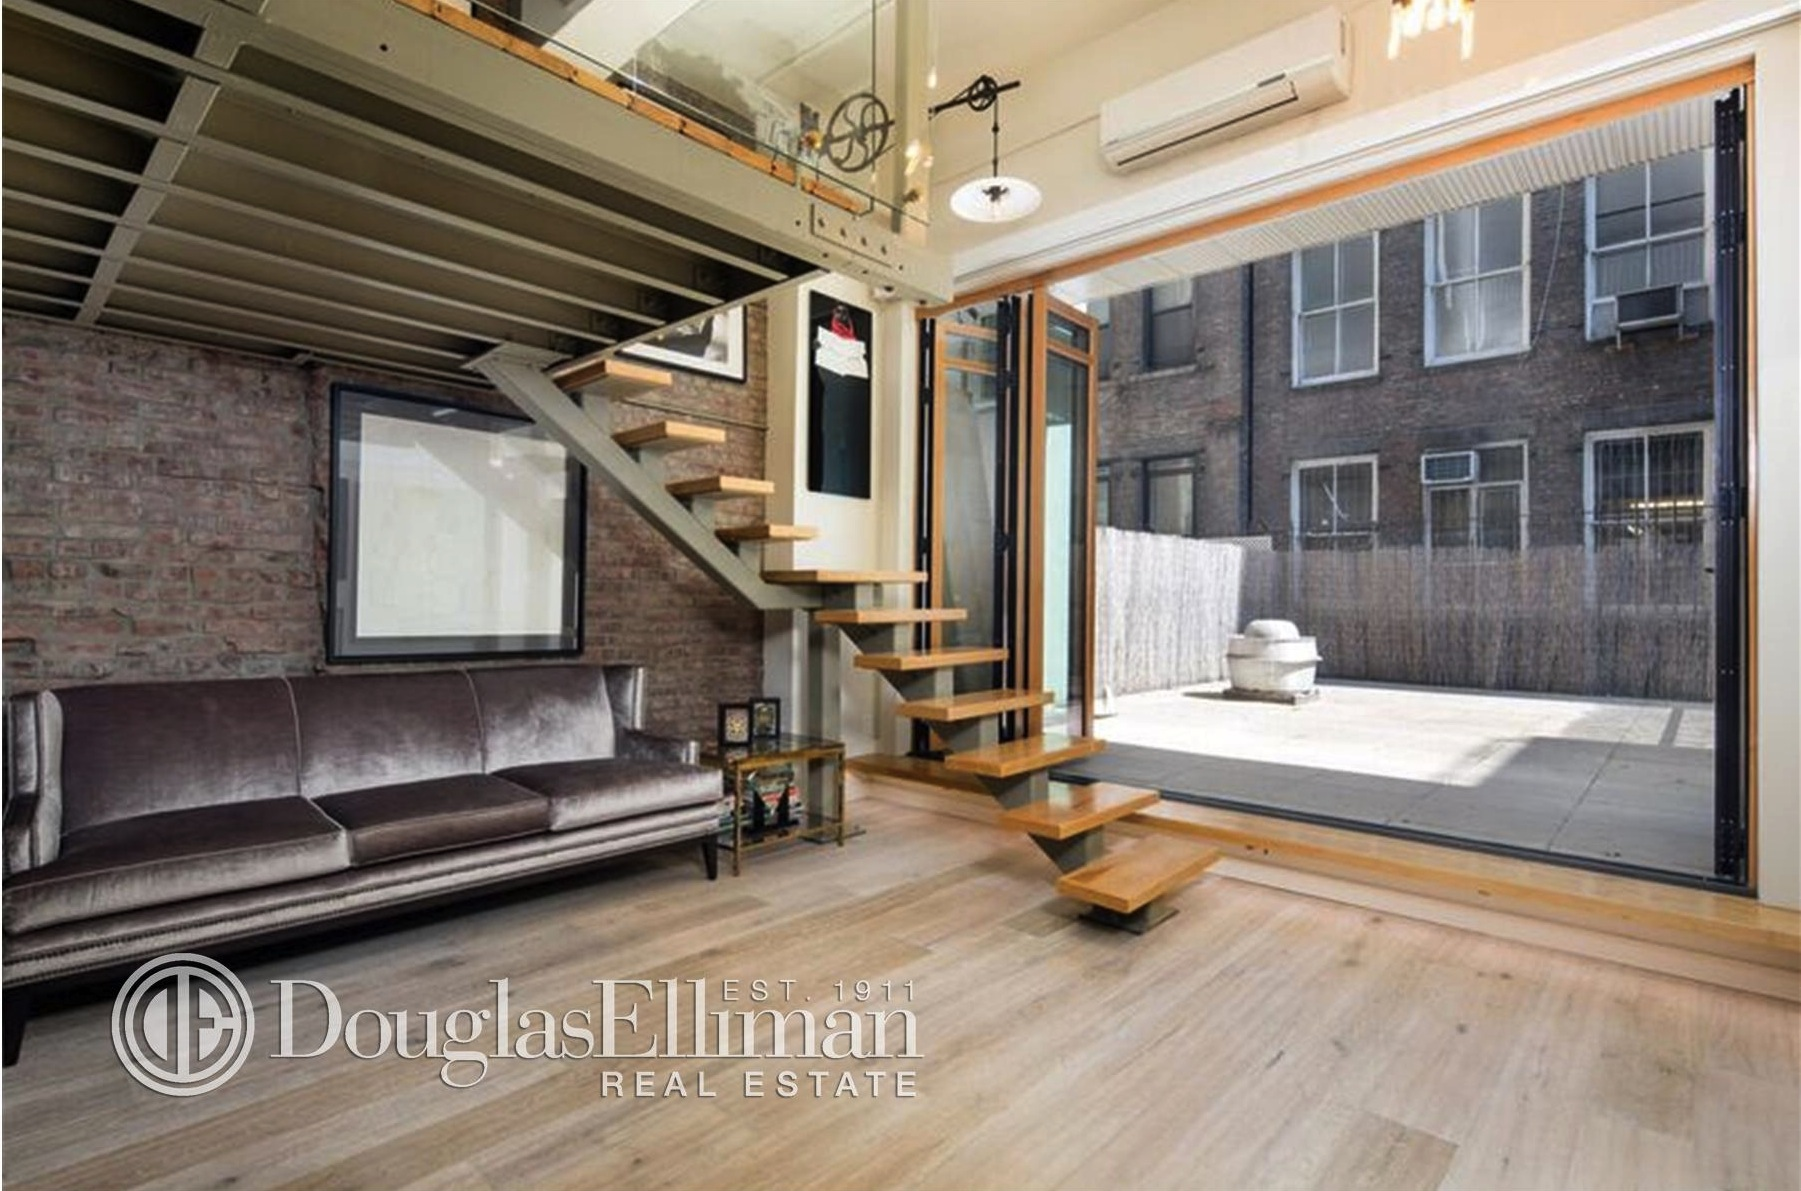 35 East 10th Street, loft, greenwich village,